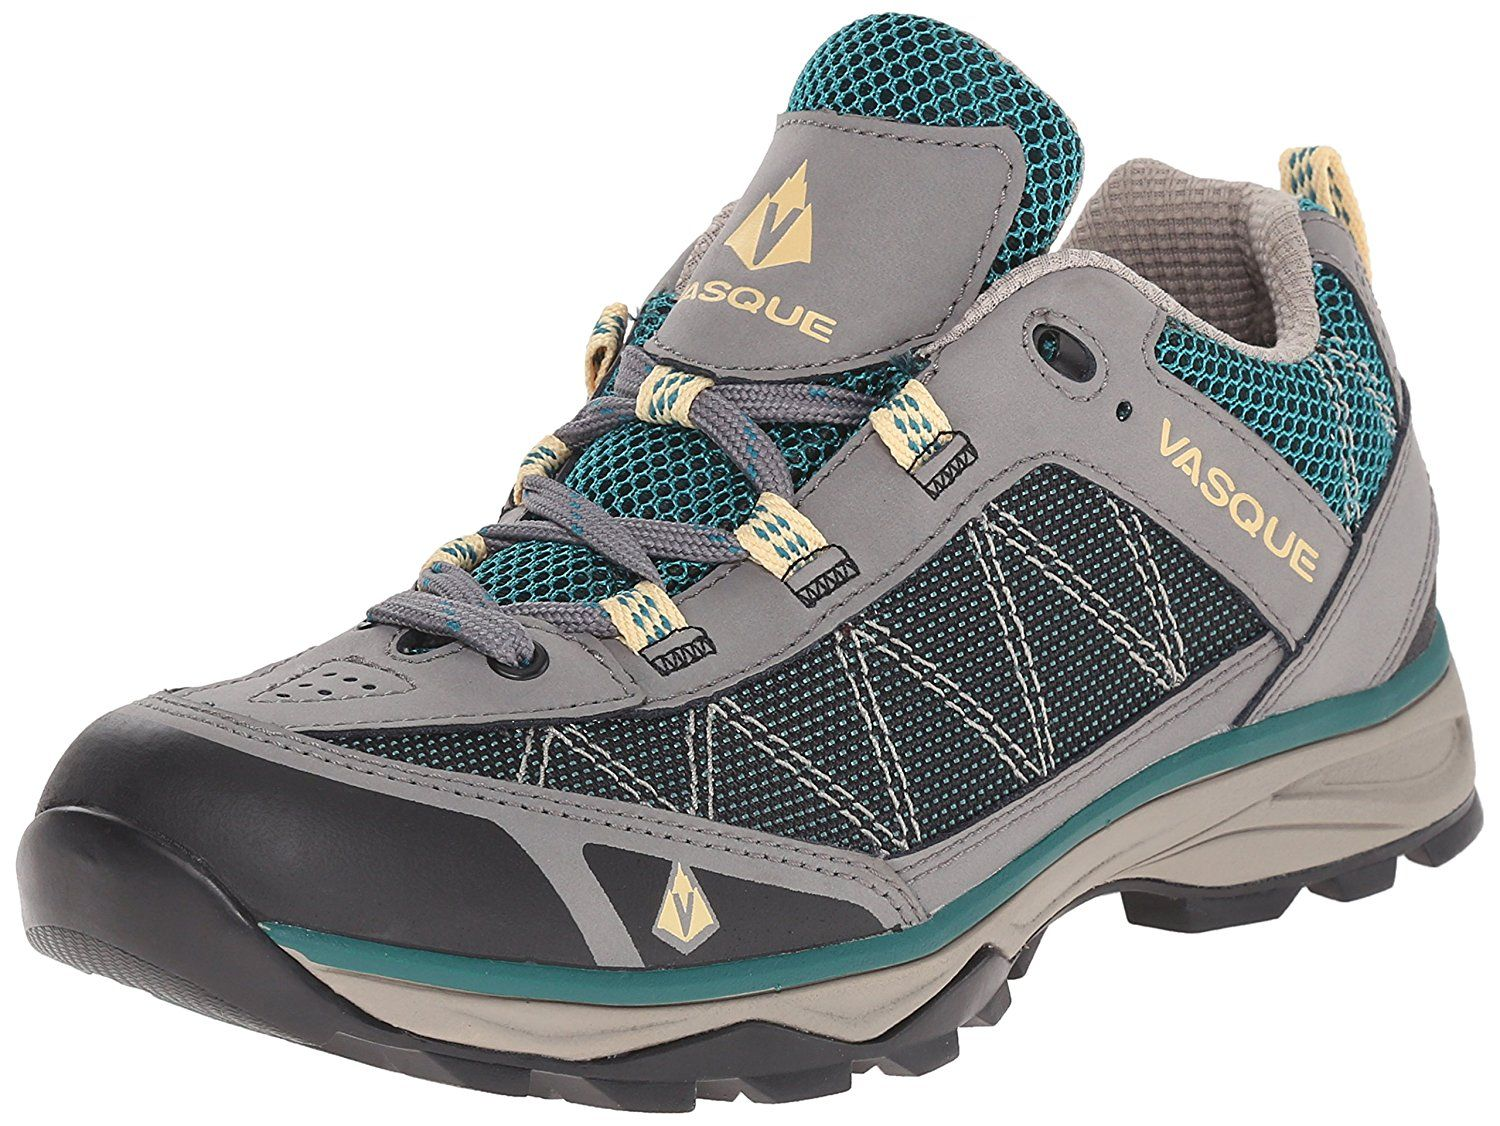 90b09385b48 Vasque Women s Monolith Low Hiking Shoe     Read more at the image ...